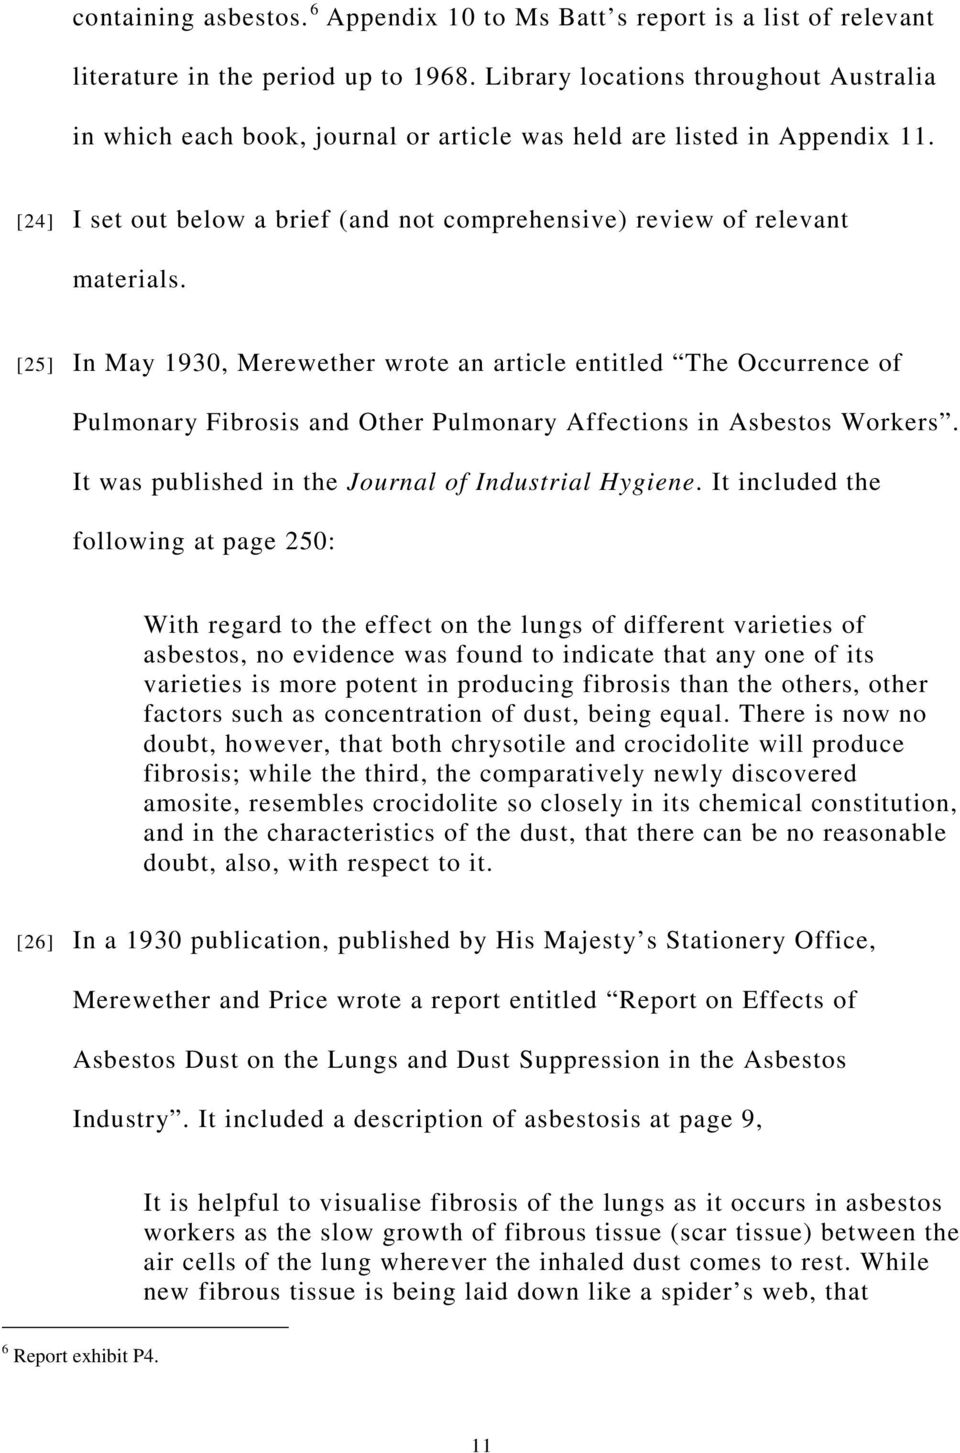 [25] In May 1930, Merewether wrote an article entitled The Occurrence of Pulmonary Fibrosis and Other Pulmonary Affections in Asbestos Workers. It was published in the Journal of Industrial Hygiene.